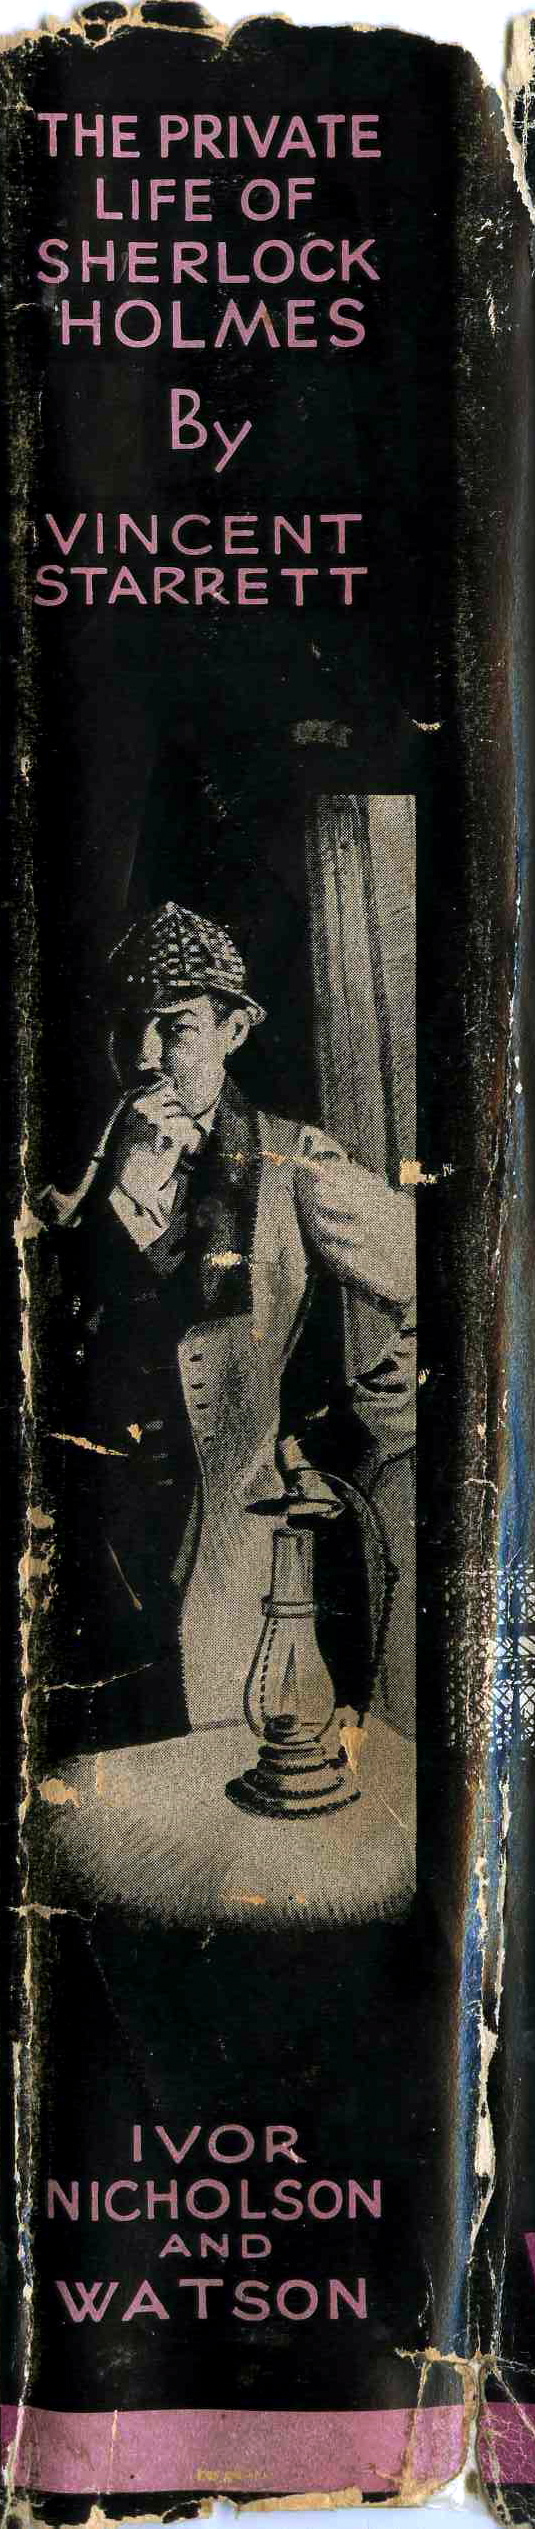 The spine of the British edition's dust jacket, with its image of a contemplative Holmes.